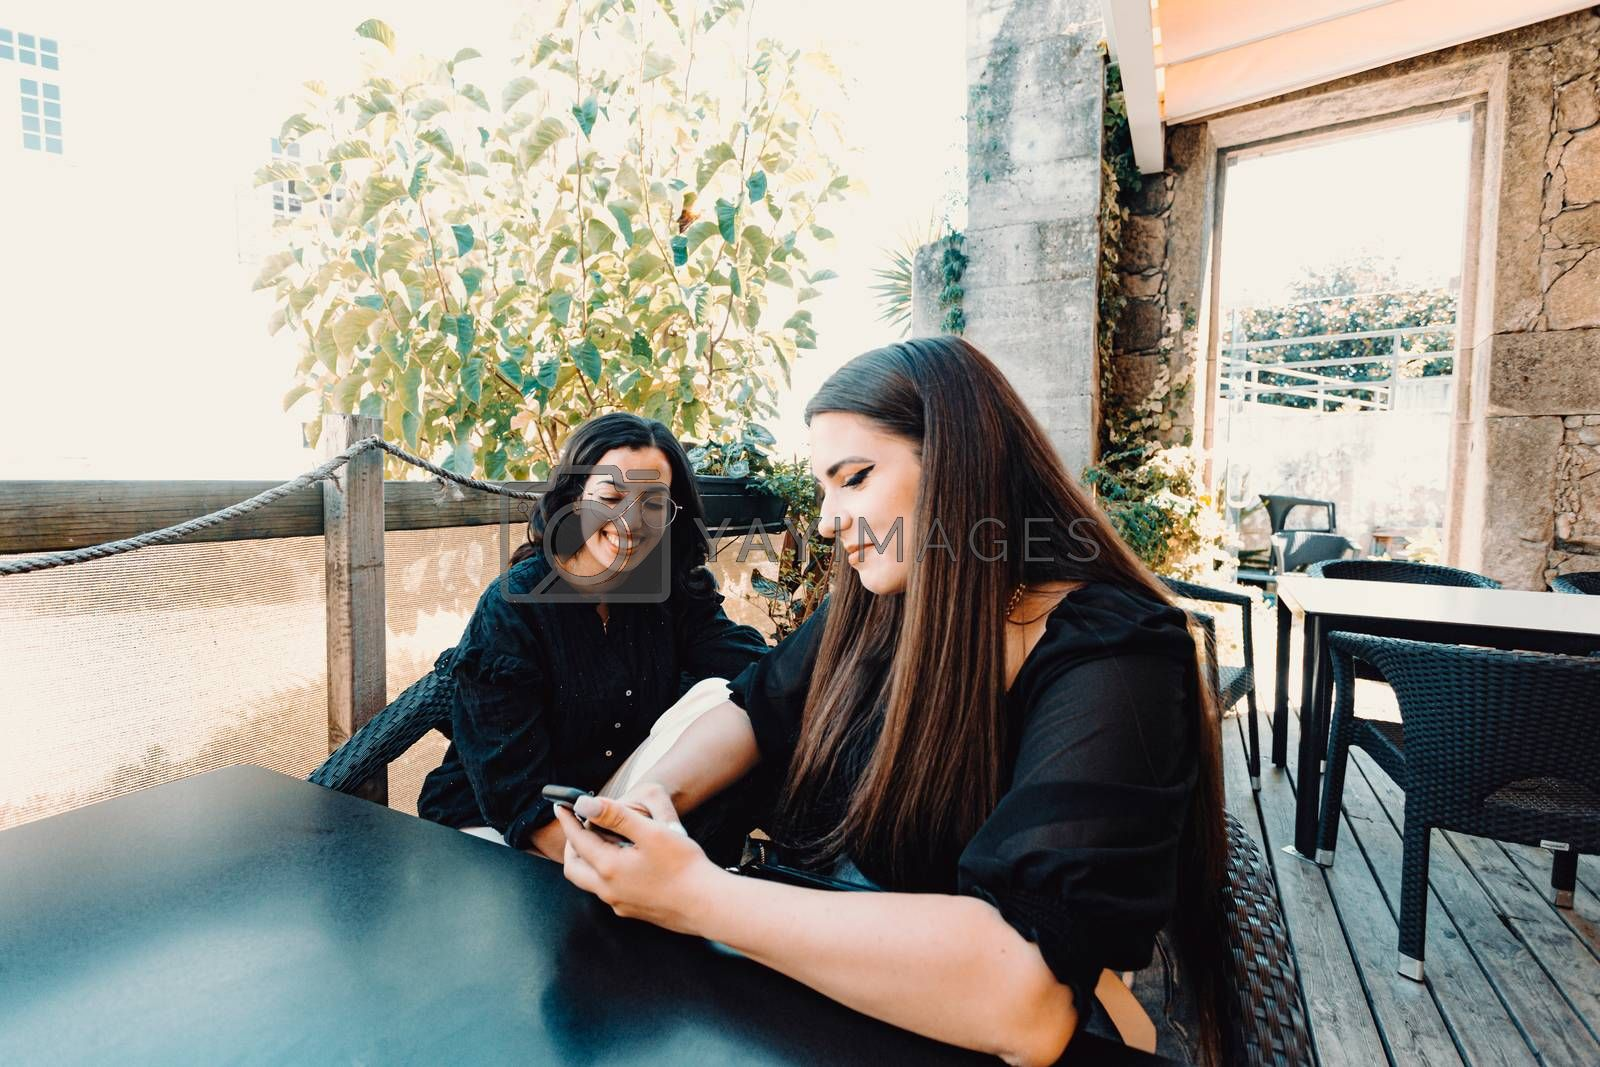 A young woman showing something on the phone making a friend laugh in the bar